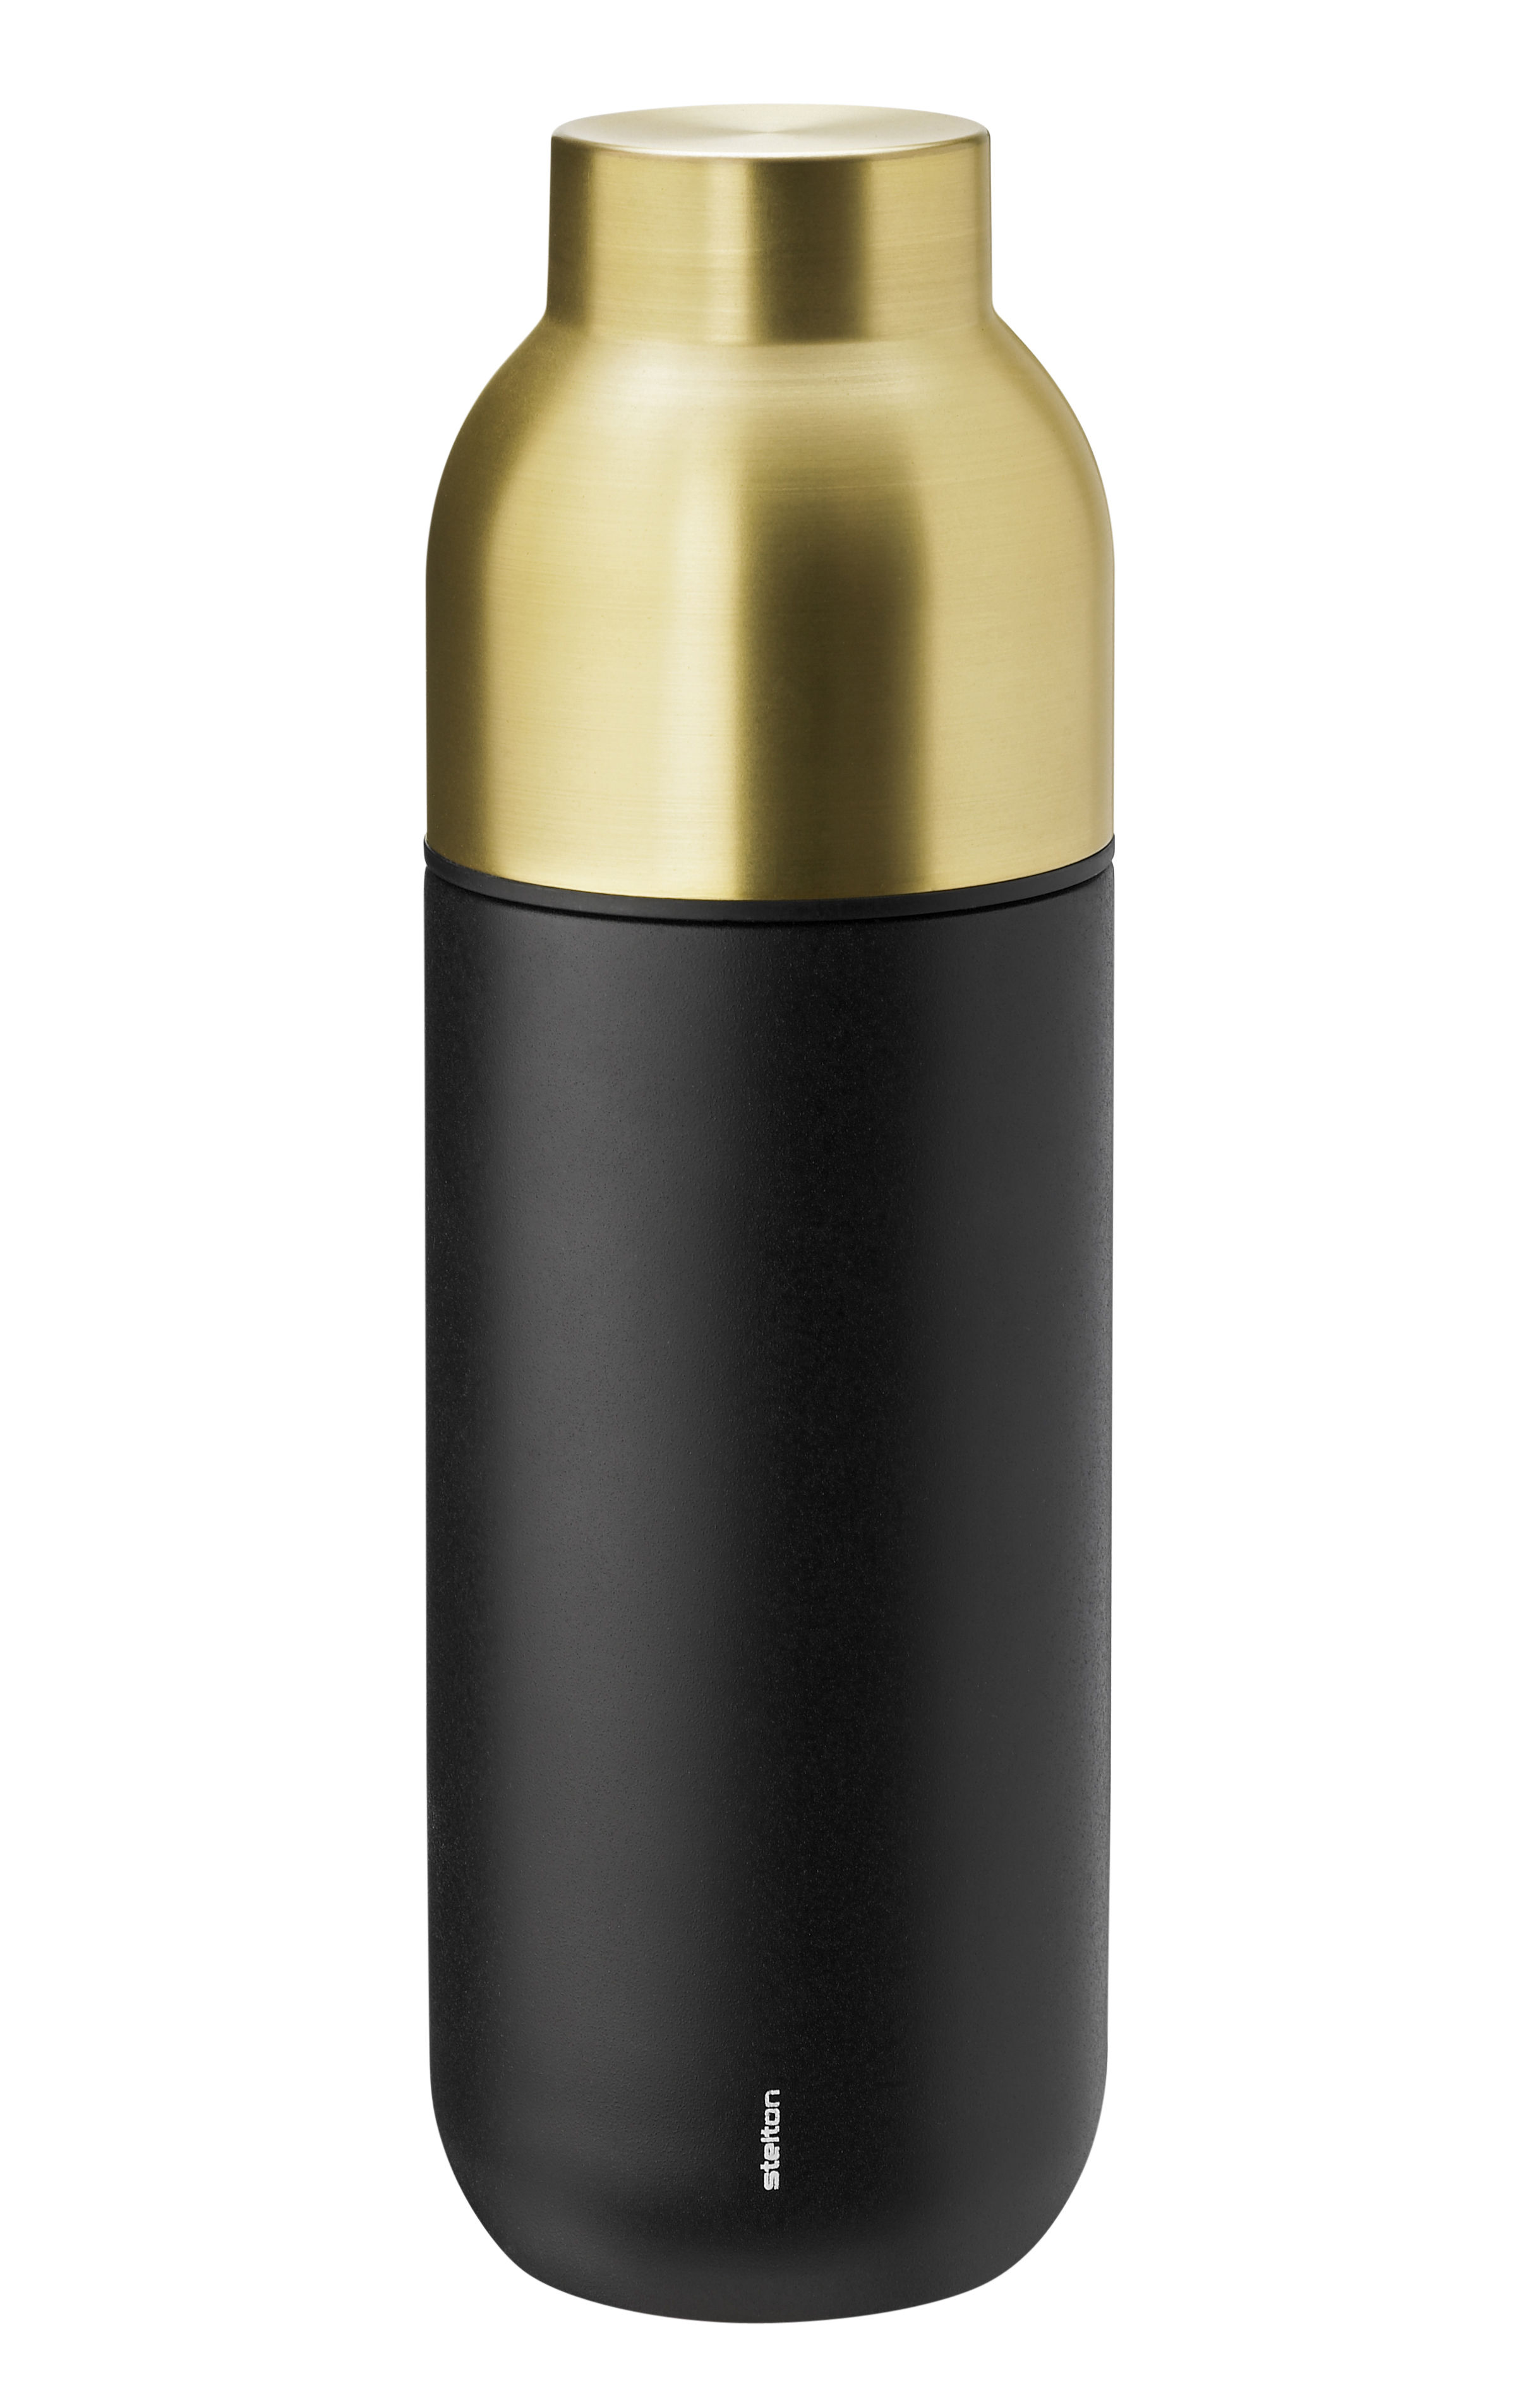 Tableware - Water Carafes & Wine Decanters - Collar Insulated bottle - / 0, 75 L by Stelton - Matt black & Brass - Brass-coated stainless steel, Plastic, Silicone, Teflon®-coated stainless steel